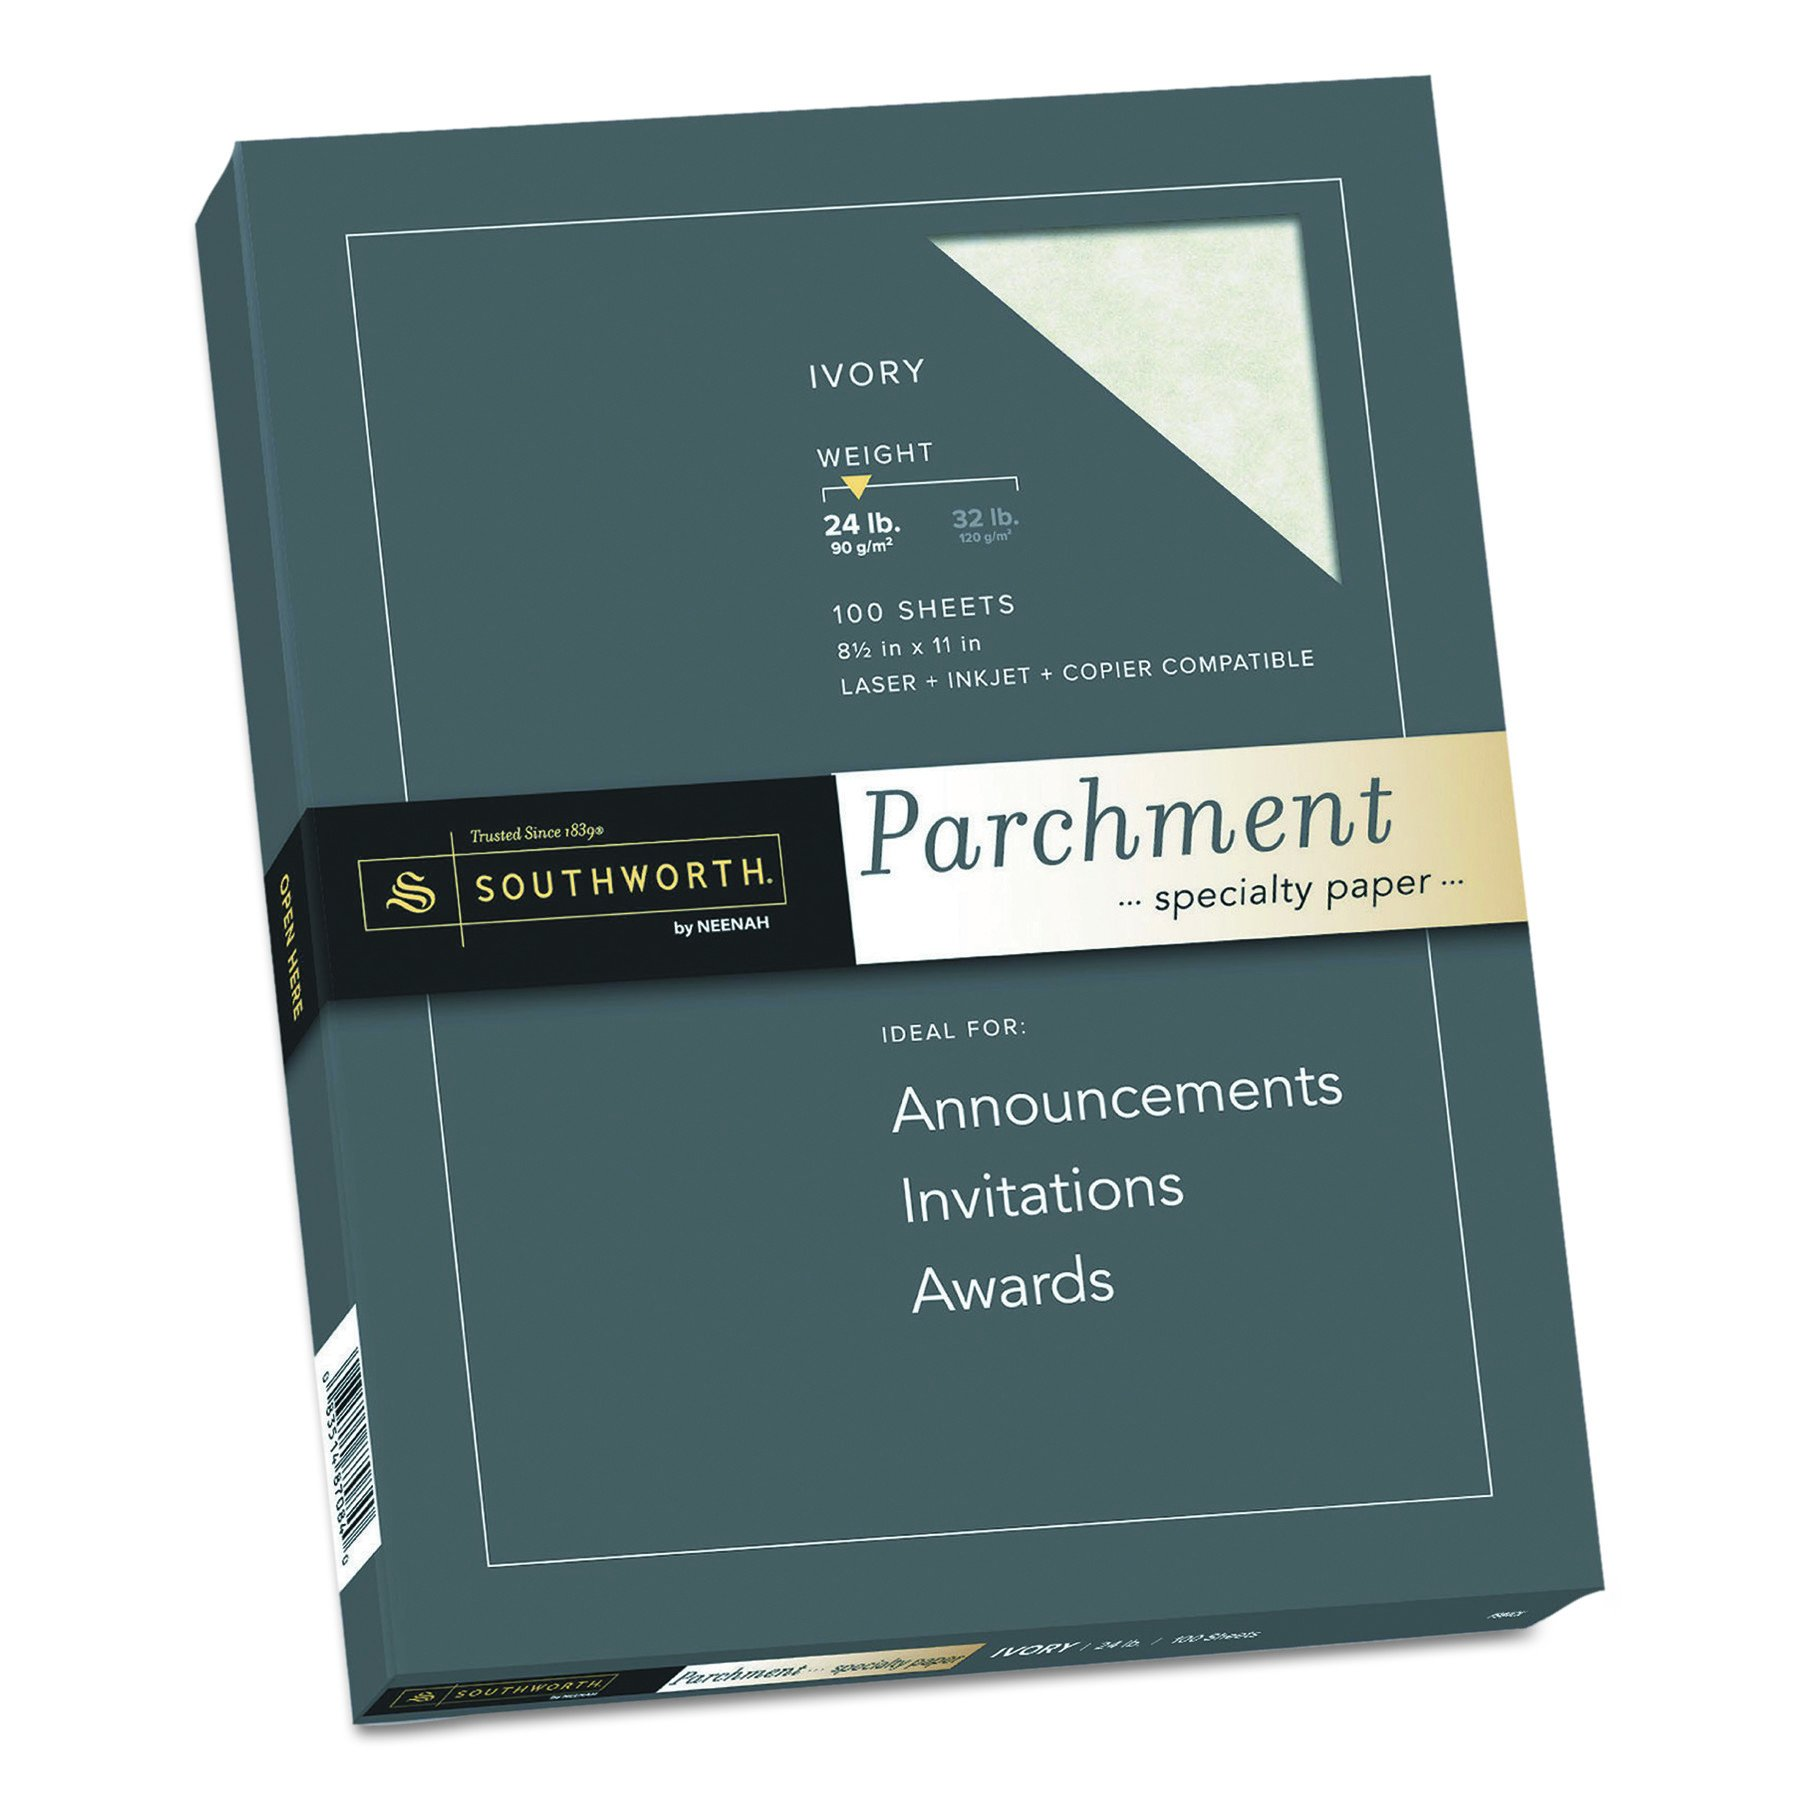 Parchment Specialty Paper 24 lbs 8-1/2 x 11 - 100/Box, Ivory by Southworth